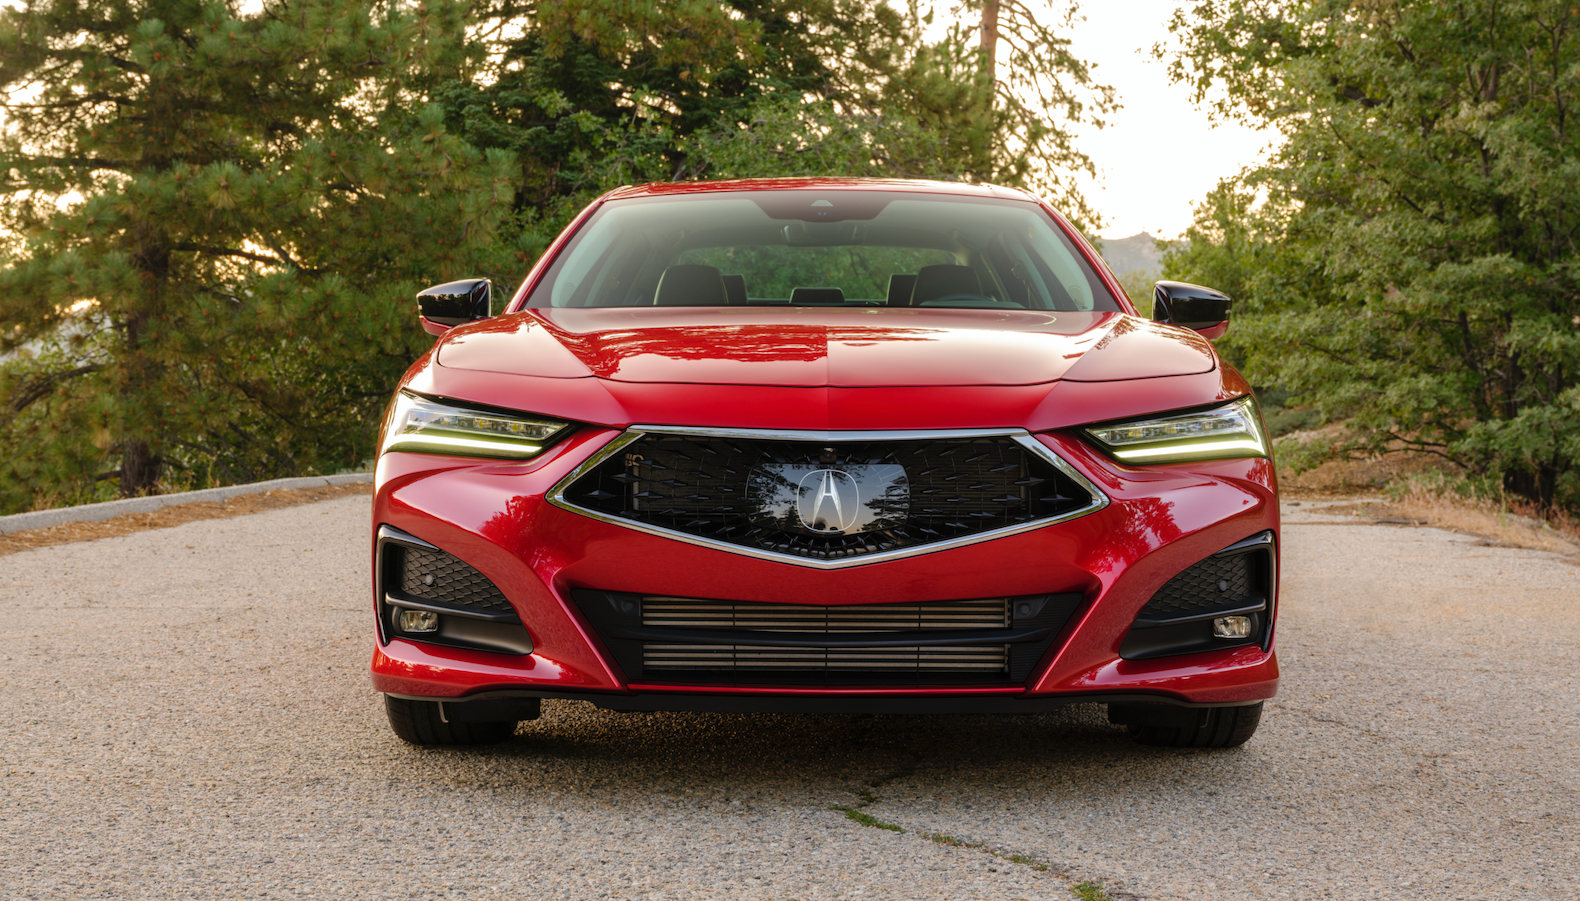 2021 acura tlx first drive review a stunning enthusiast's